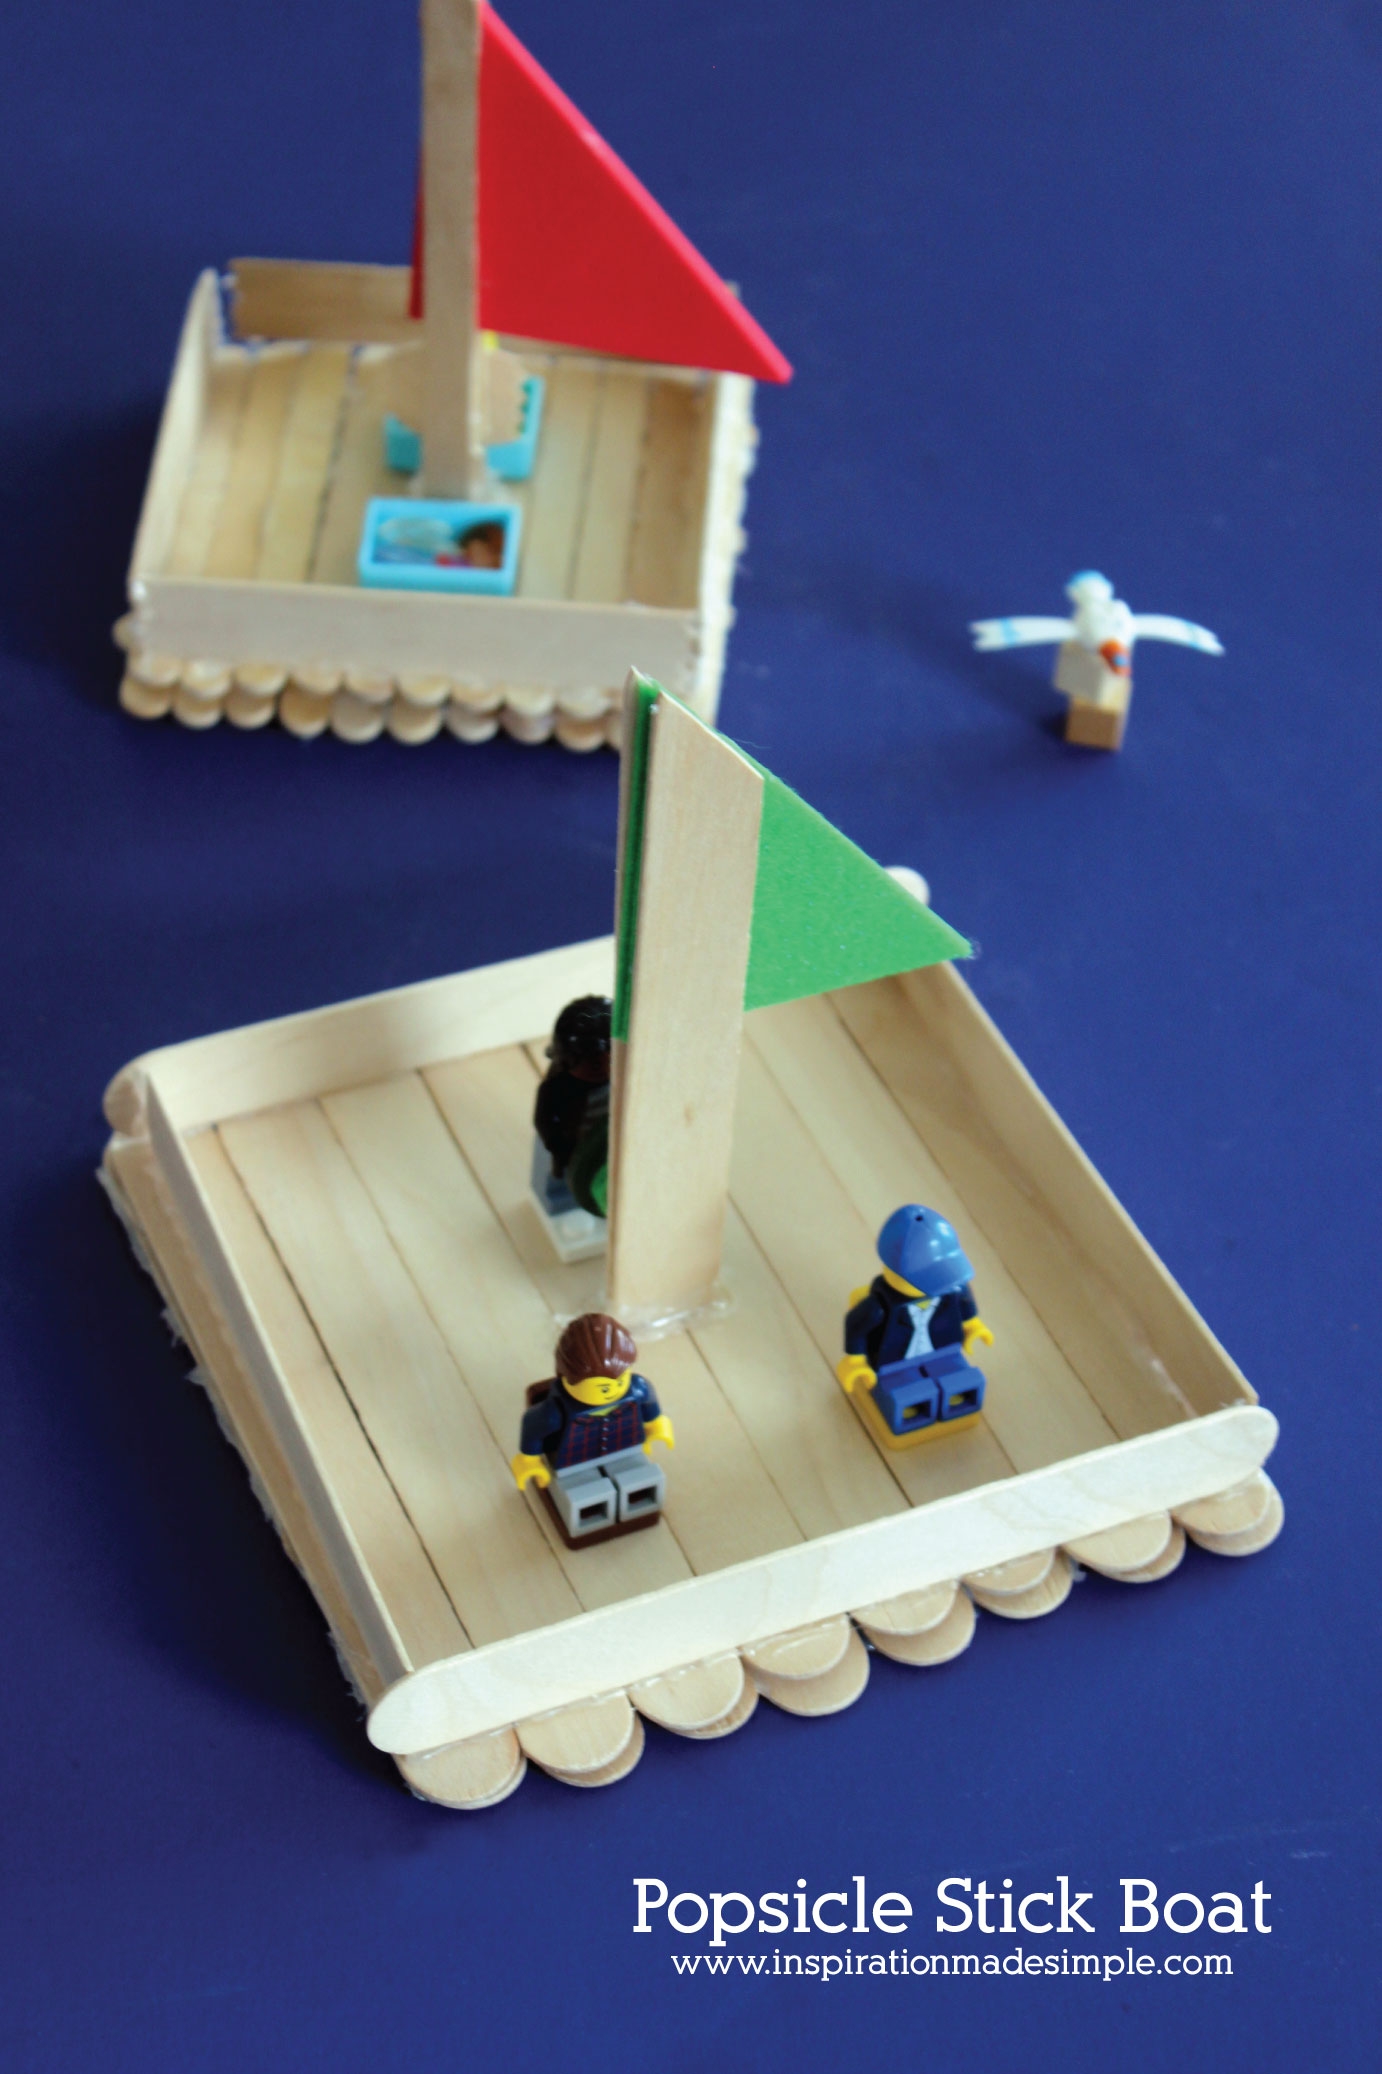 Popsicle Stick Boat Kids Craft - Inspiration Made Simple